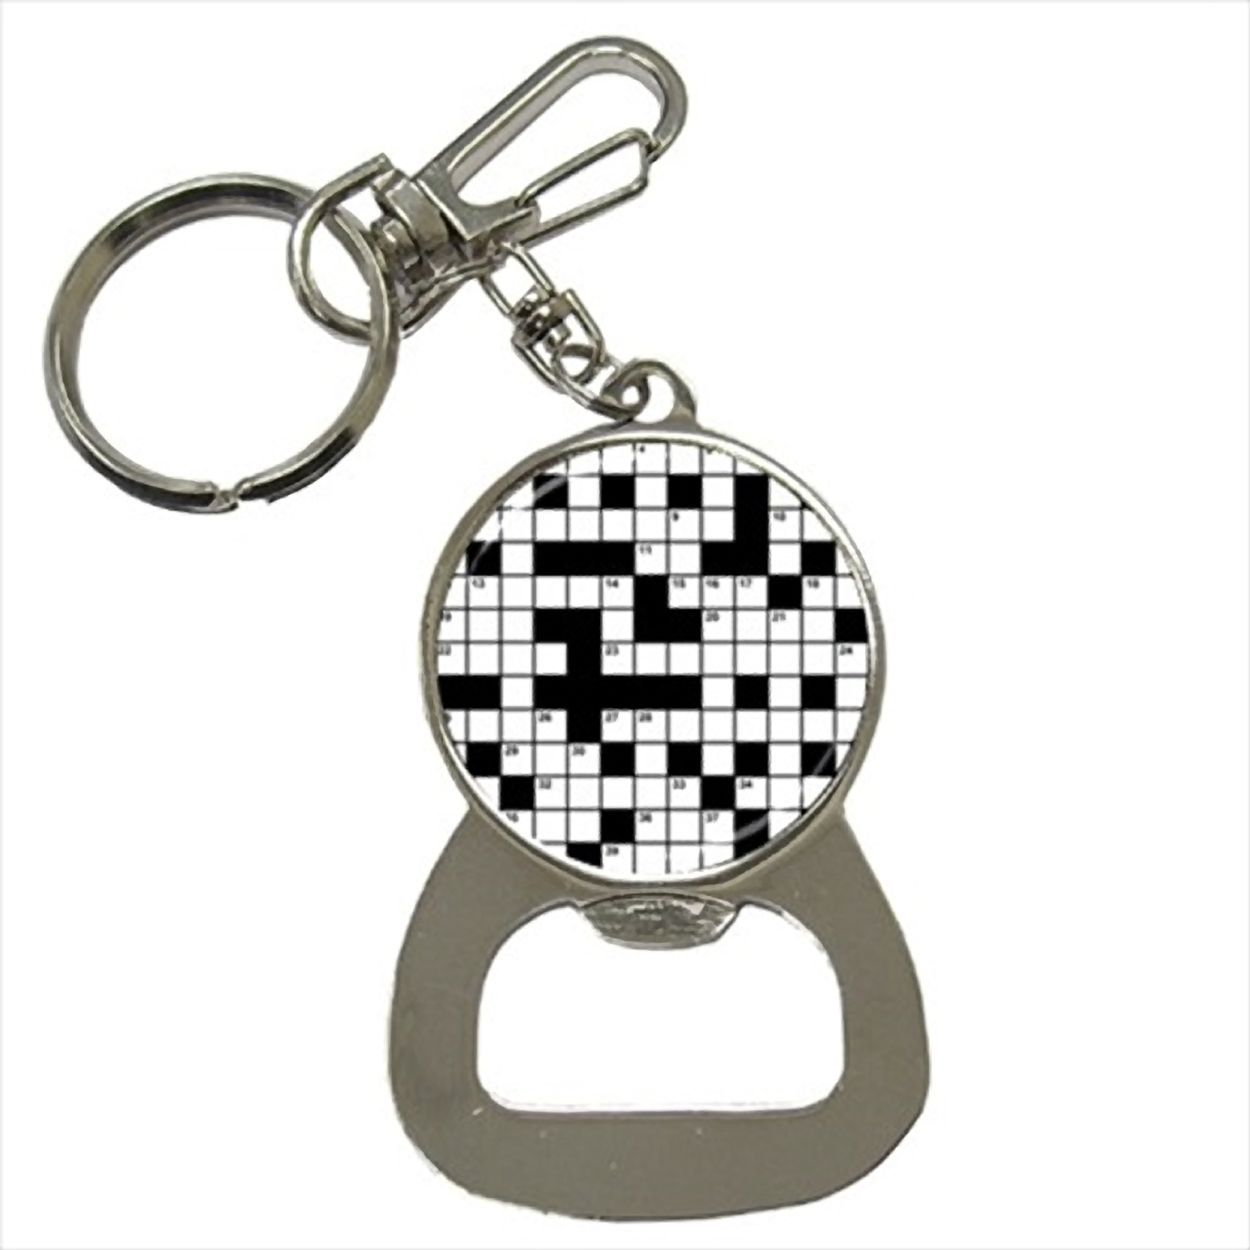 Crossword Puzzles Bottle Opener Keychain and Beer Drink Coaster Set